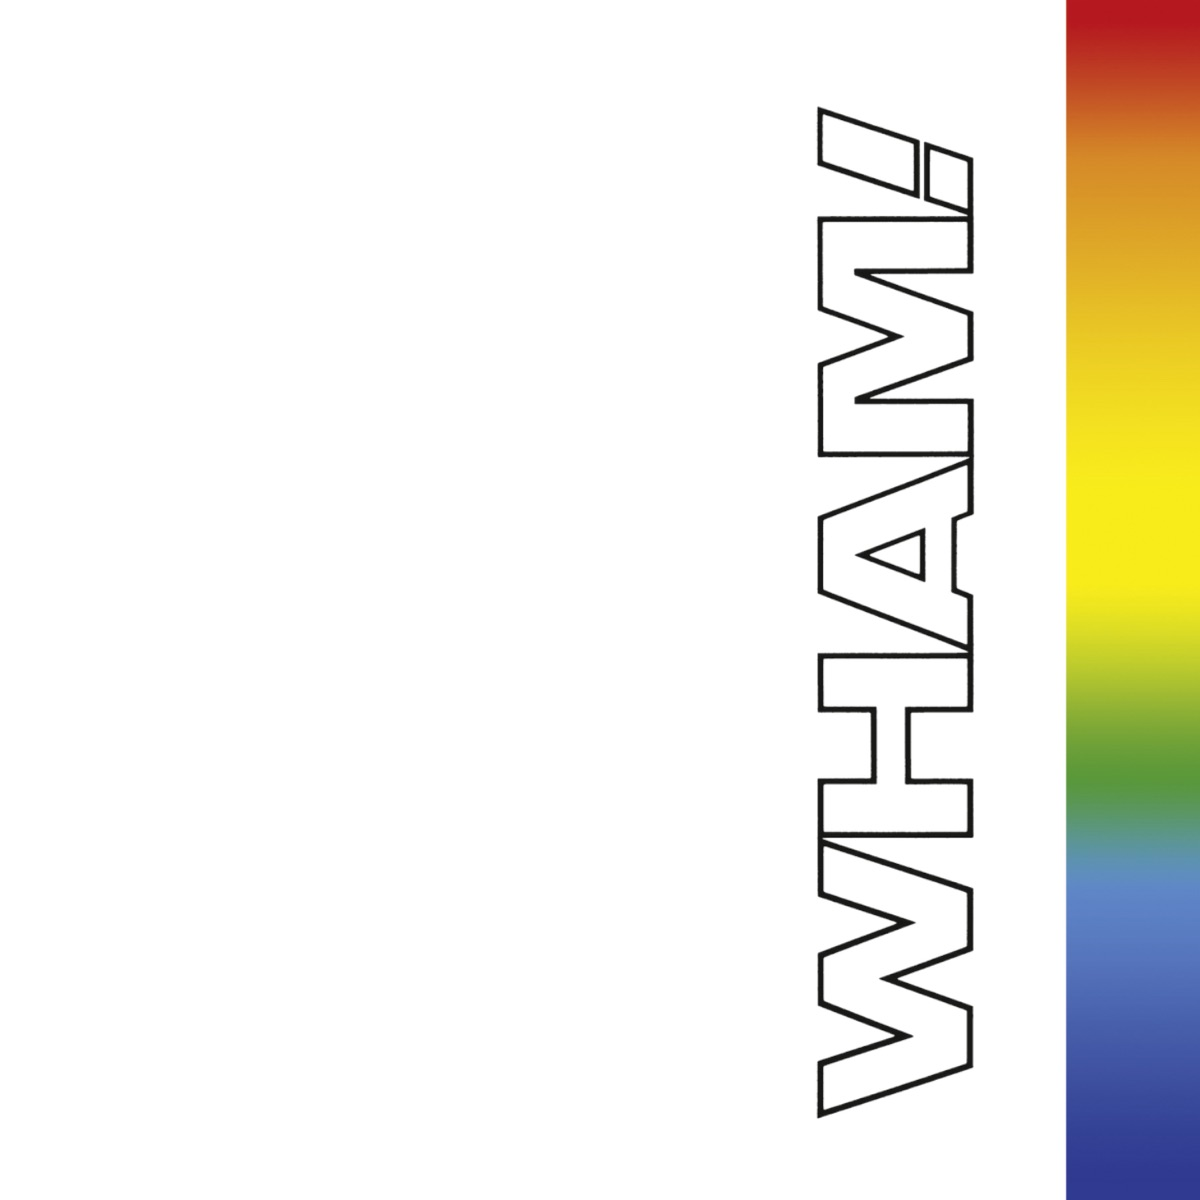 The Final Deluxe Edition Wham CD cover